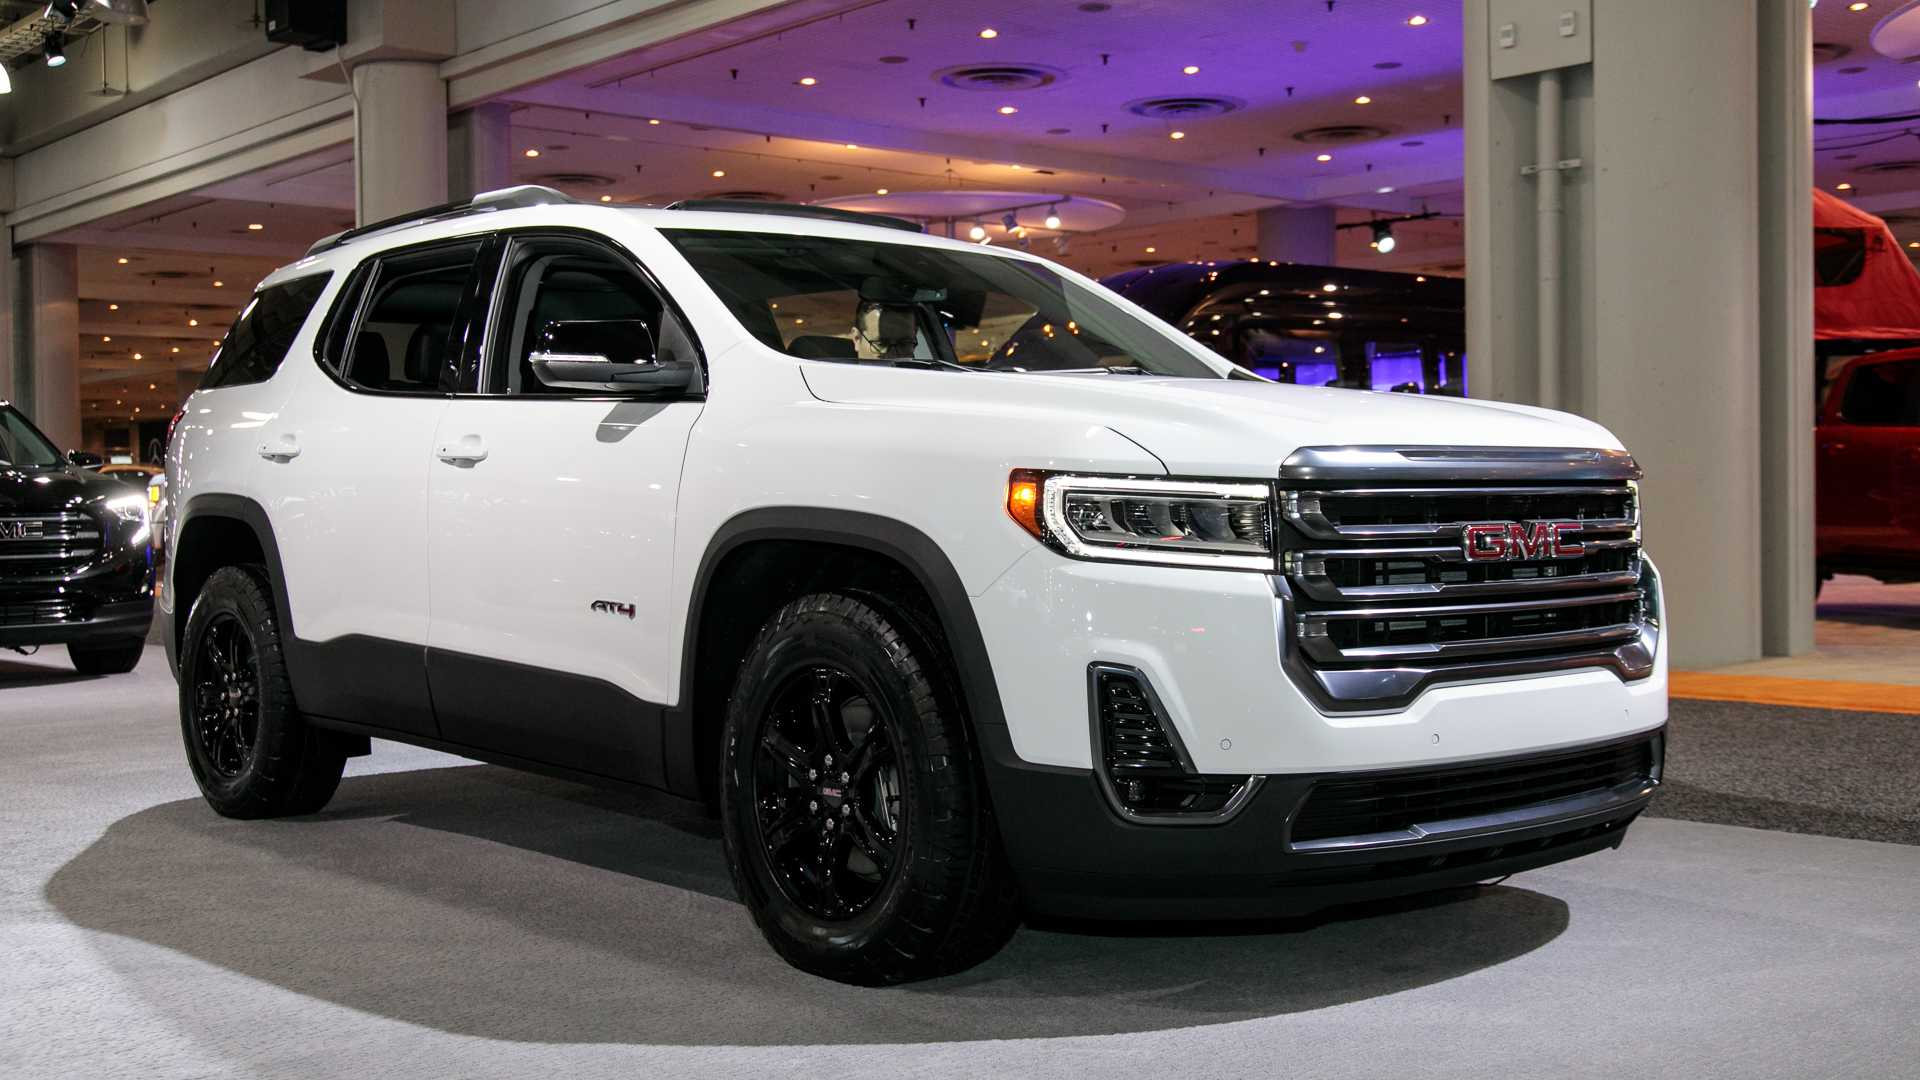 19 New Gmc Acadia 2020 Price First Drive with Gmc Acadia 2020 Price